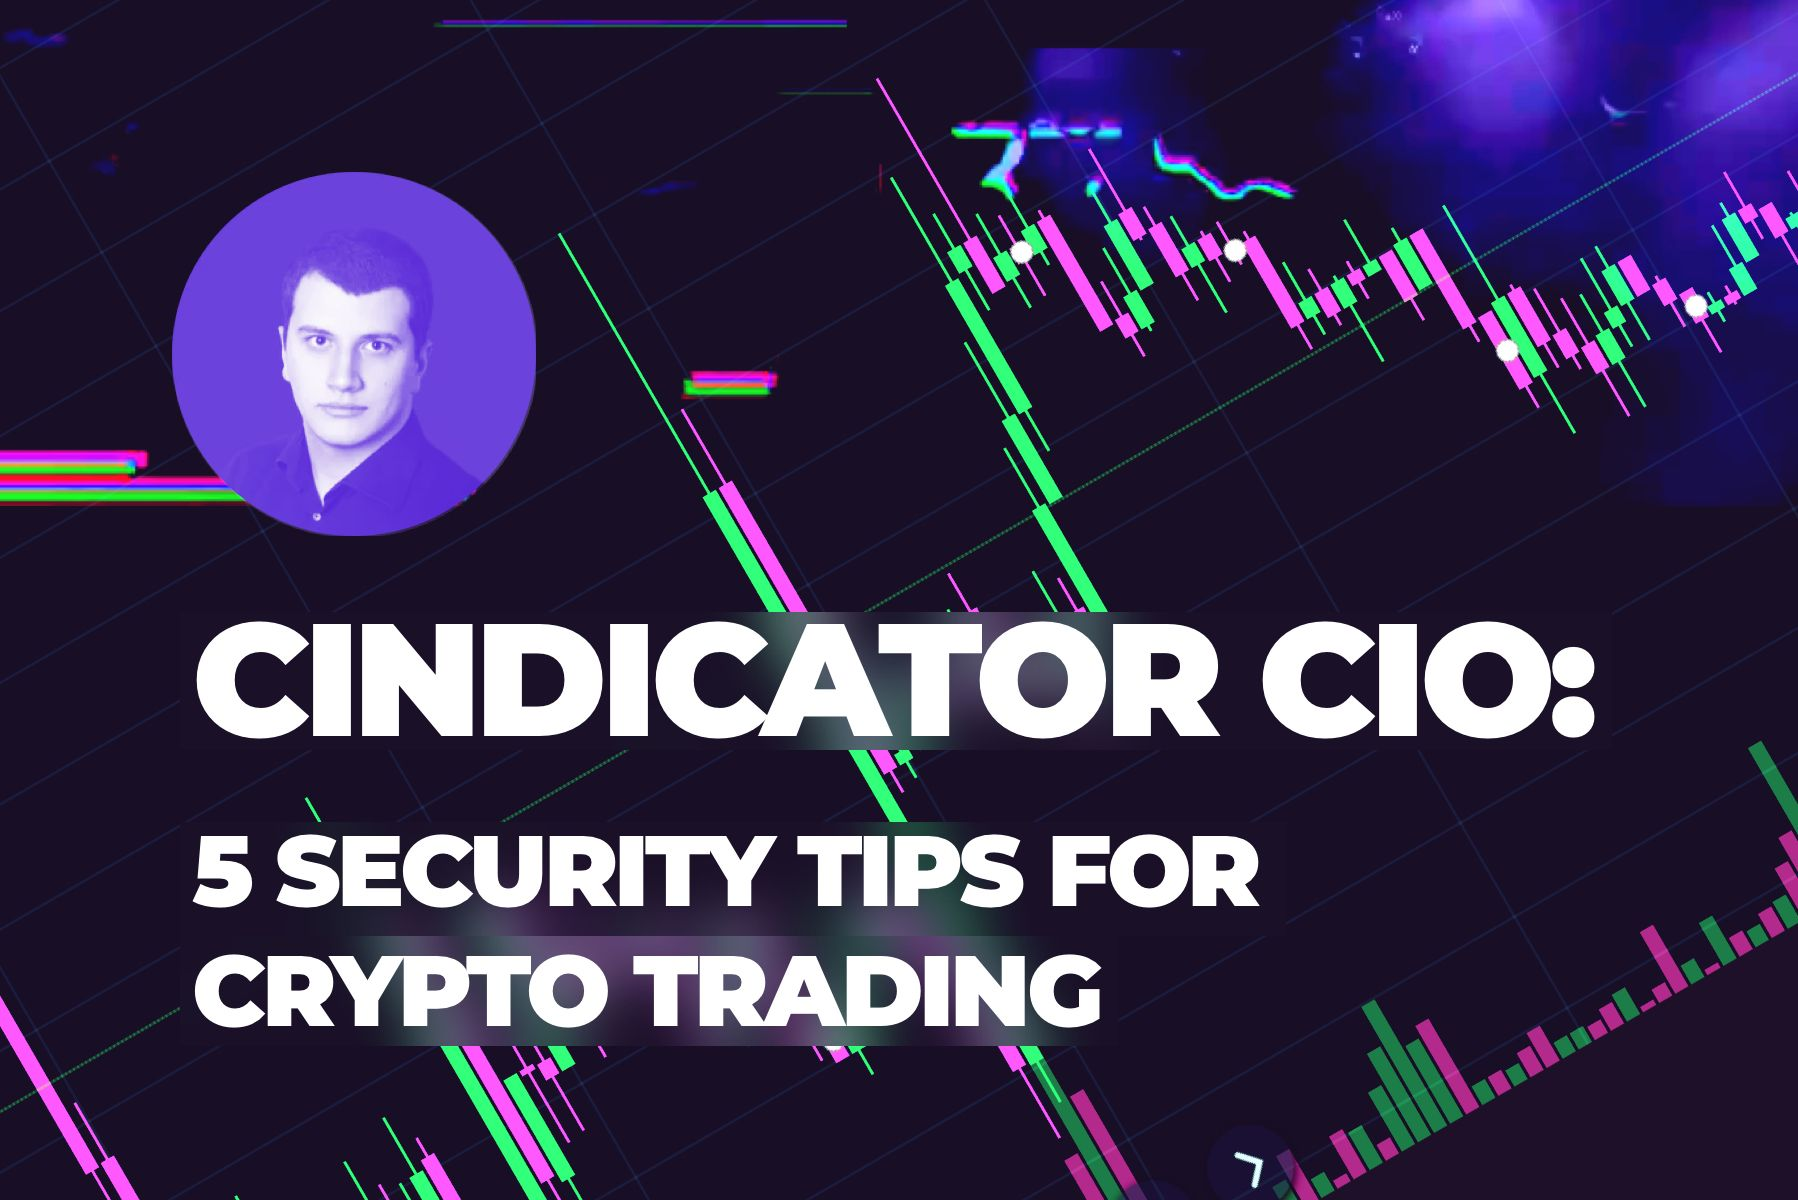 The five most important security tips for crypto trading